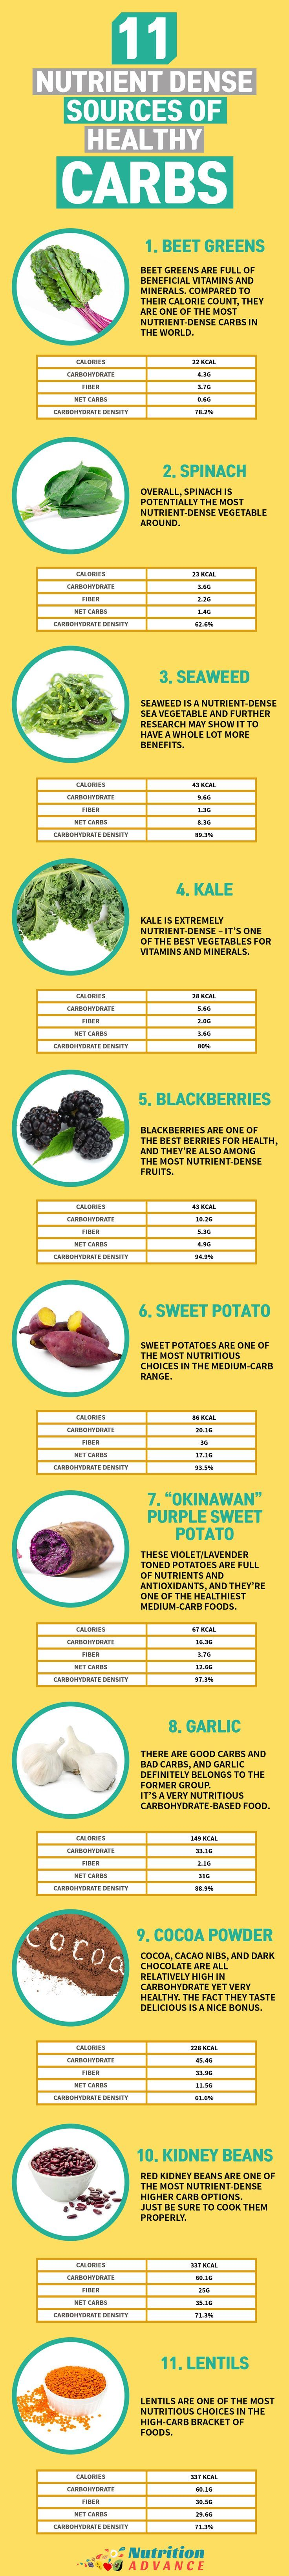 From Low Carb to Higher, this infographic shows some of the best carbohydrate sources to include in the diet. and they are all the most nutrient-dense options in their particular carbohydrate range. For eg, spinach is much more nutrient-dense than lettuce (in the very low carb part) and beans are much more nutritious than grains/sugar (in the higher carb part). See the full article at http://nutritionadvance.com/nutrient-dense-healthy-carbs